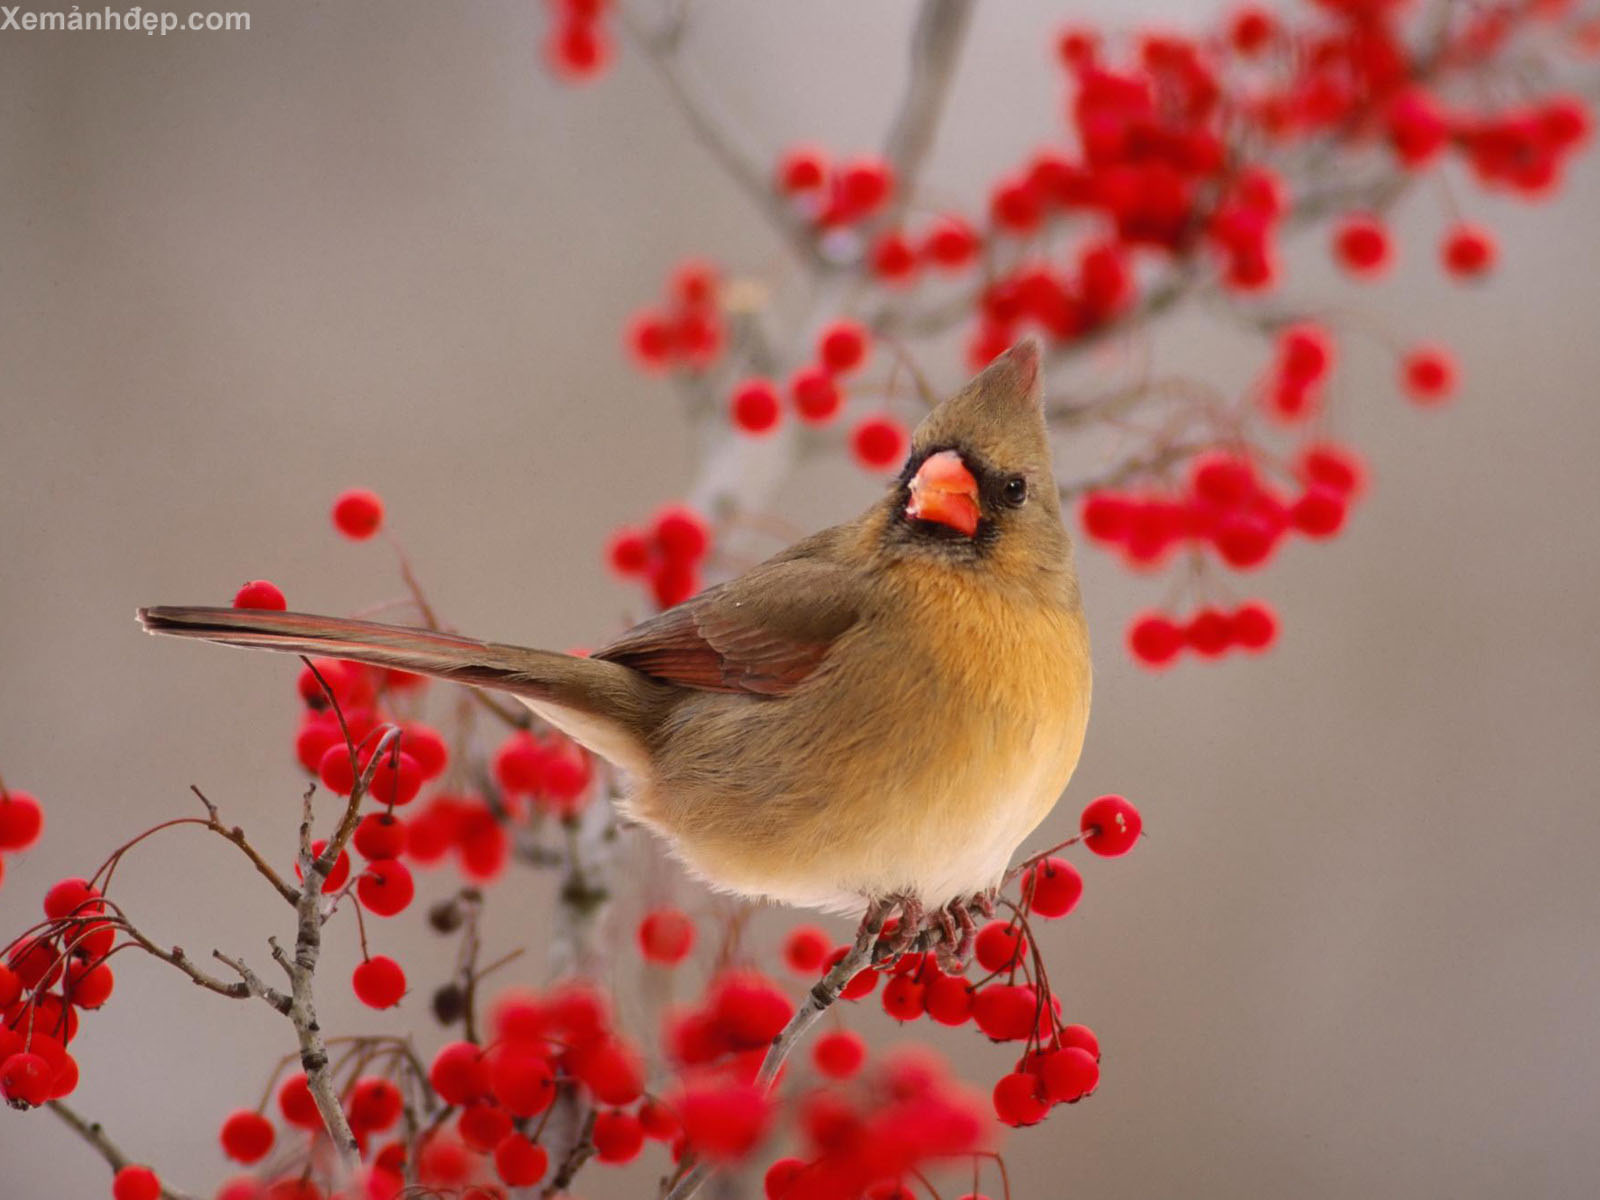 Beautiful bird photos